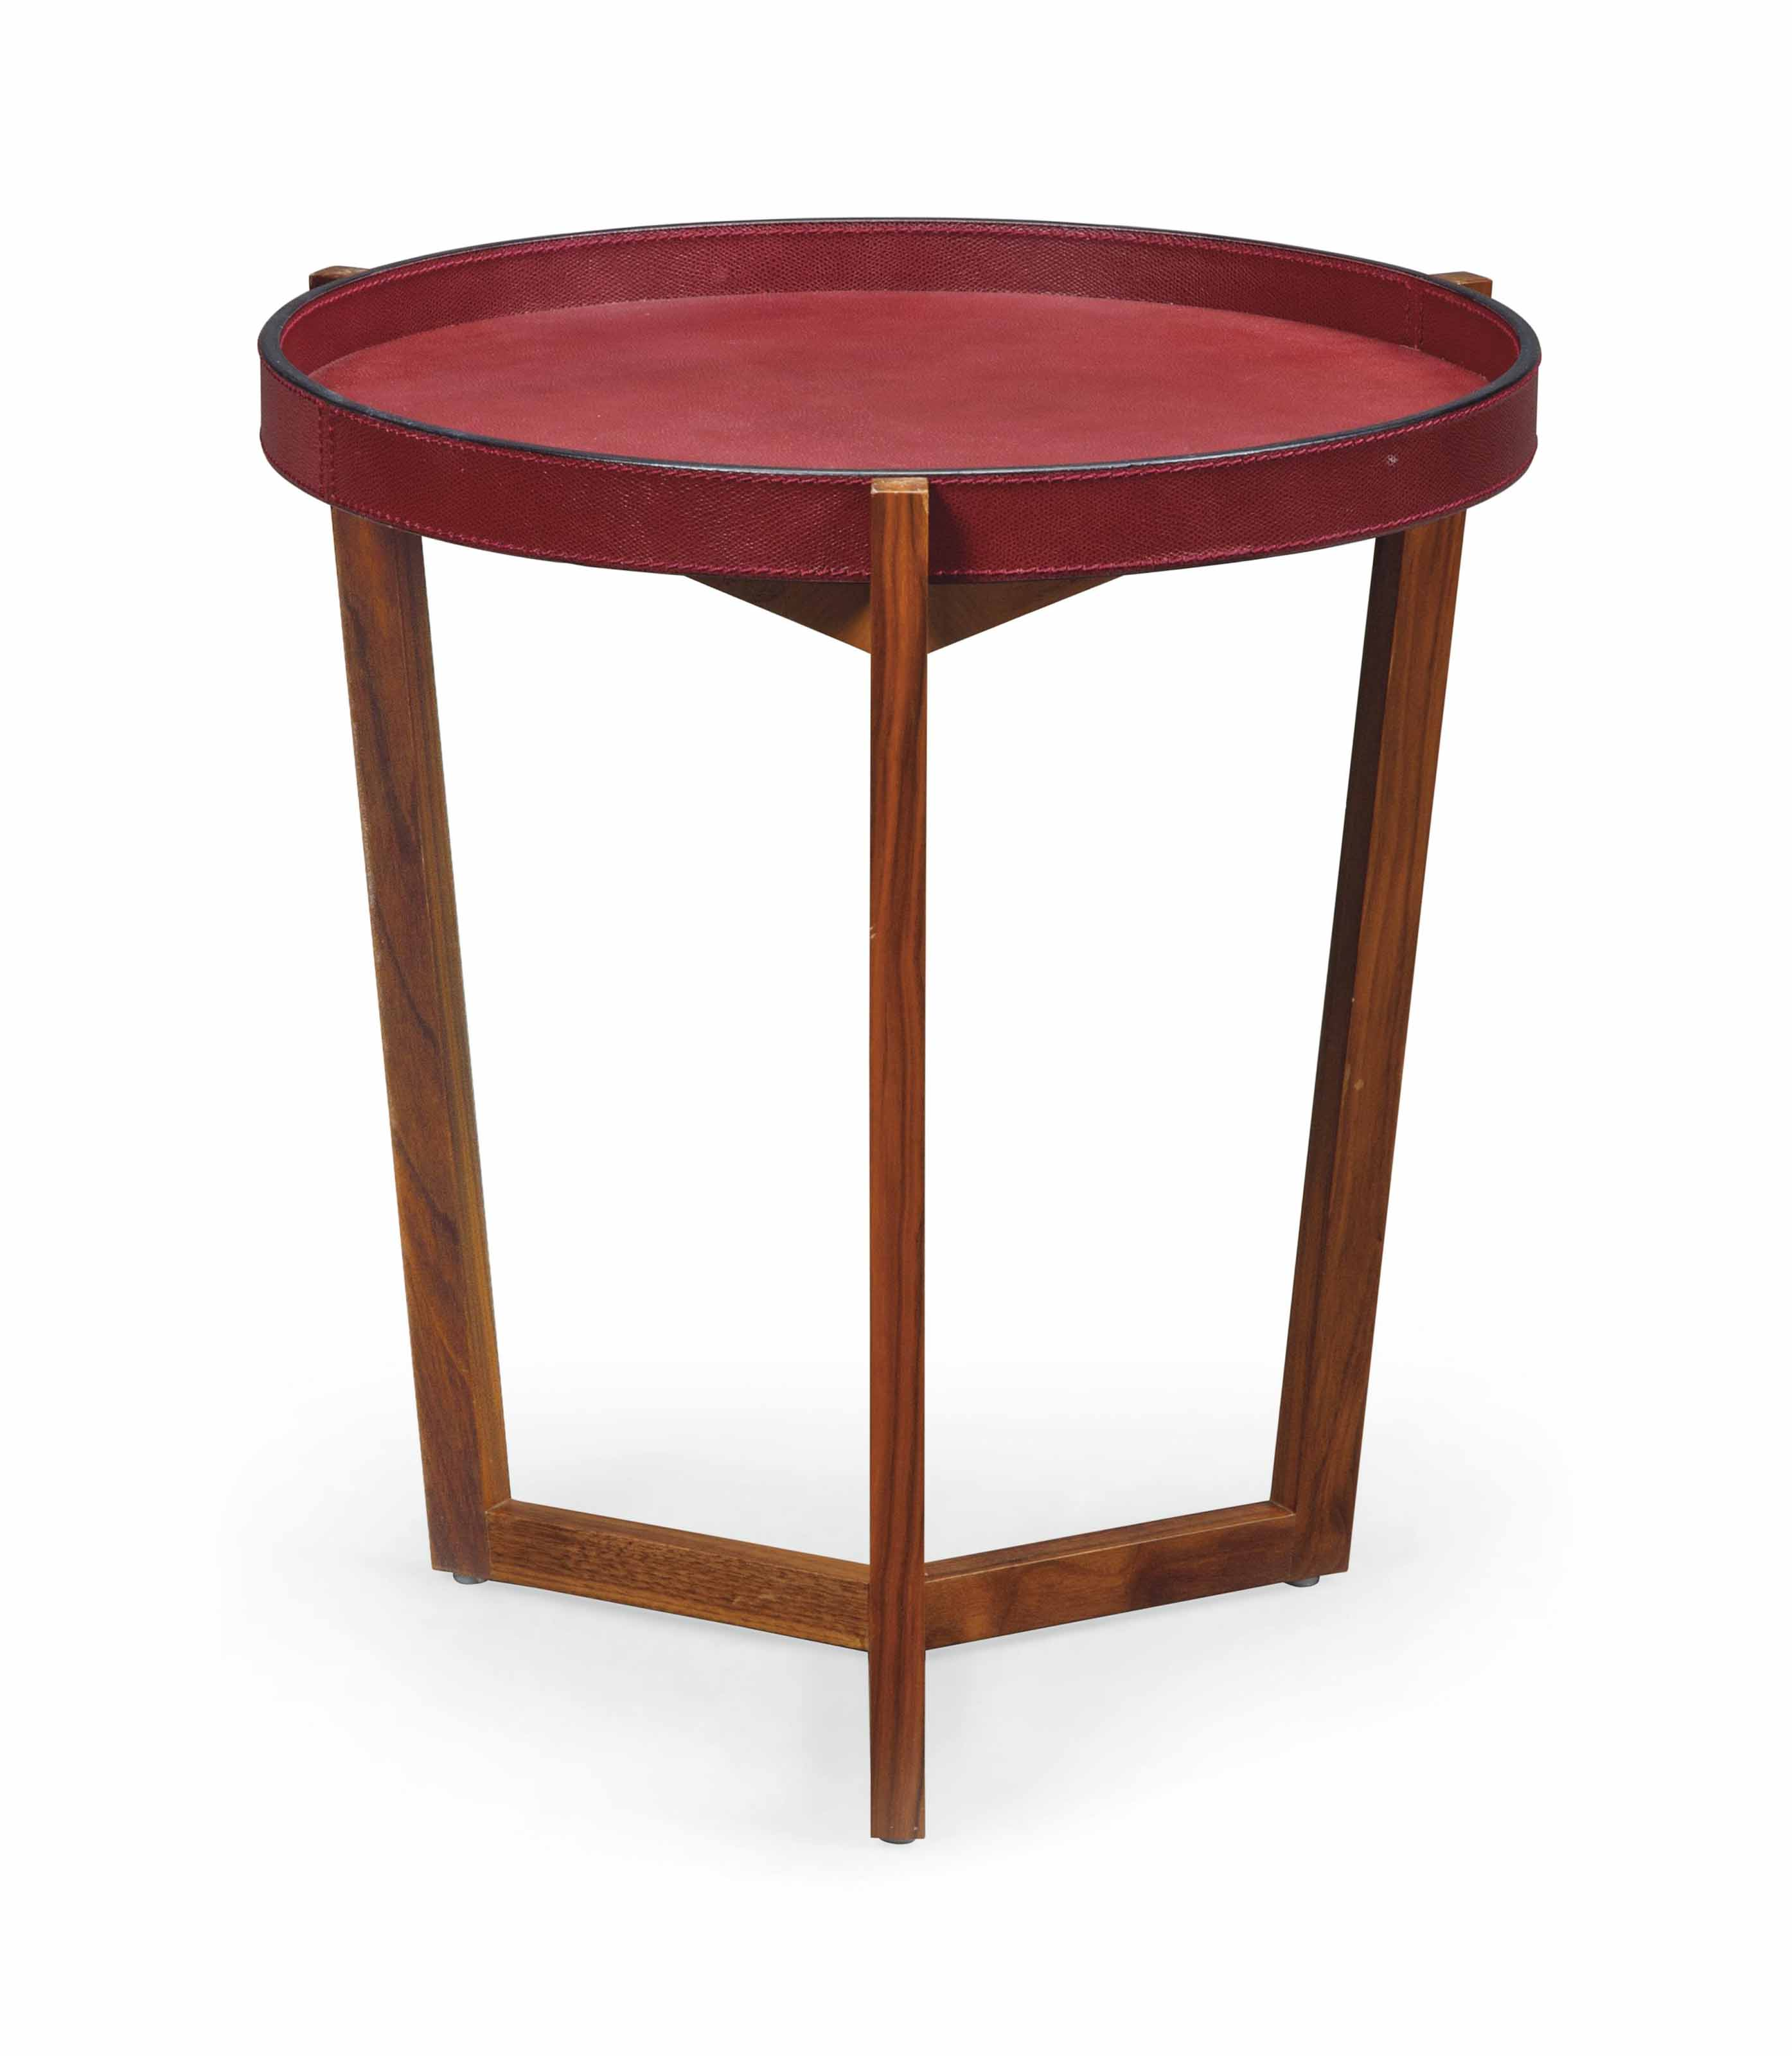 A WALNUT AND BURGUNDY LEATHER OCCASIONAL TABLE